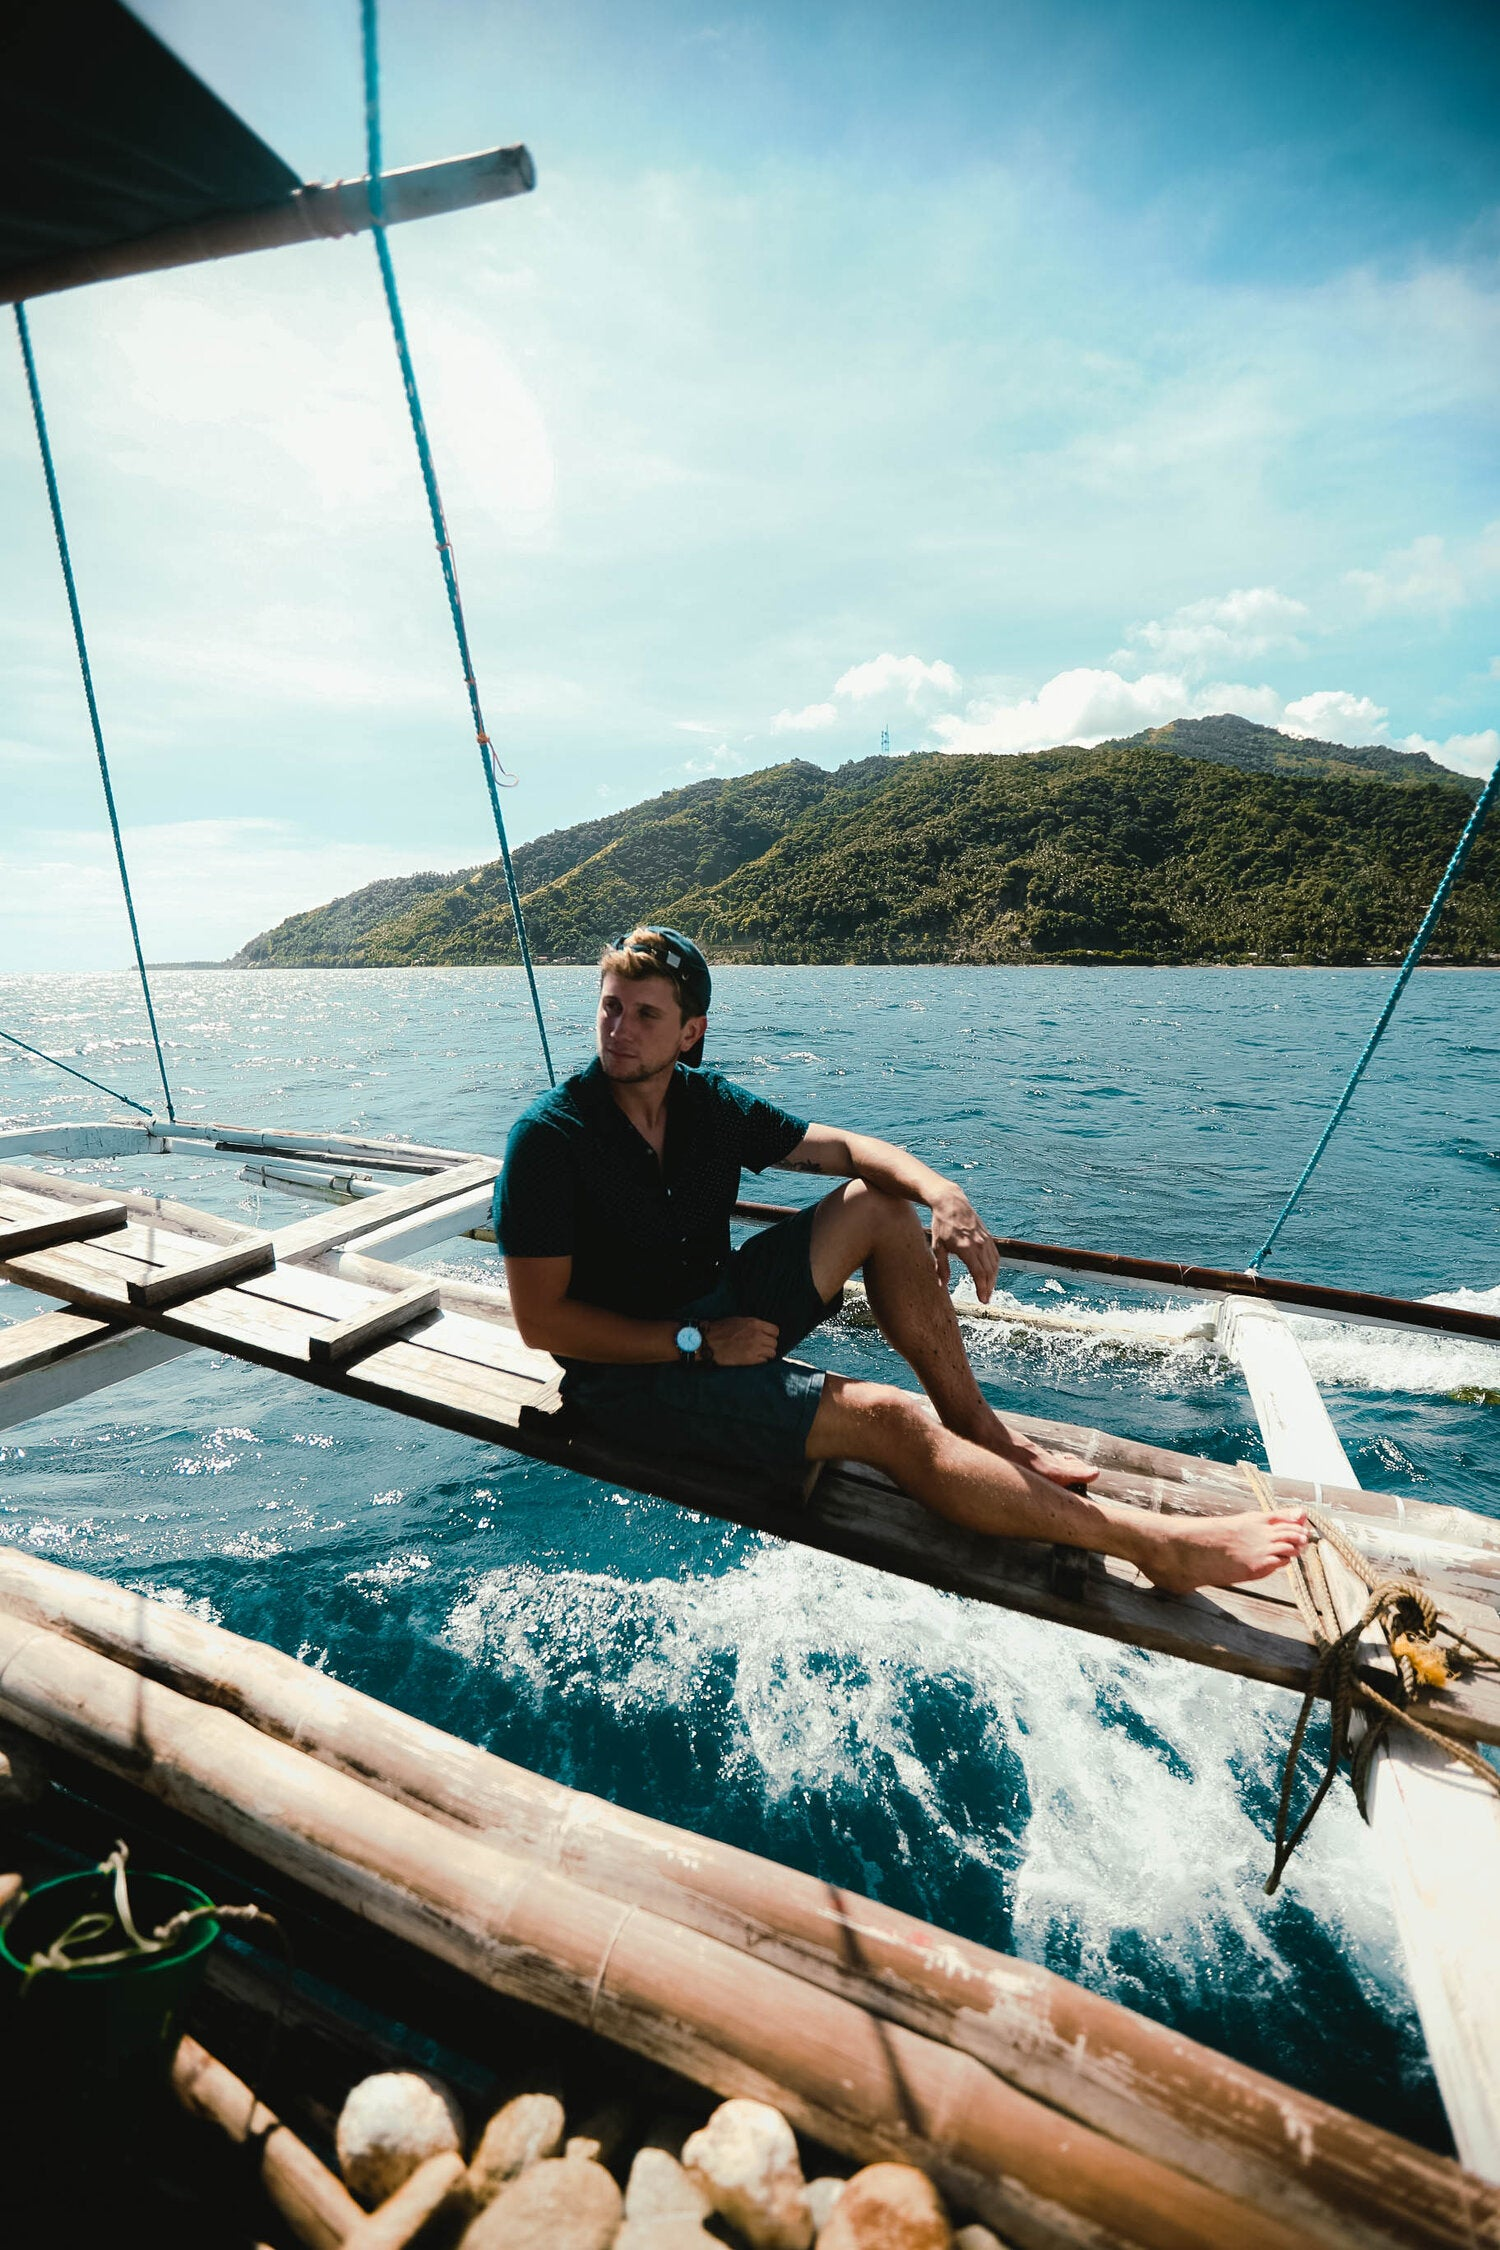 Lost LeBlanc on boat on way to Cresta De Gallo, Philippines